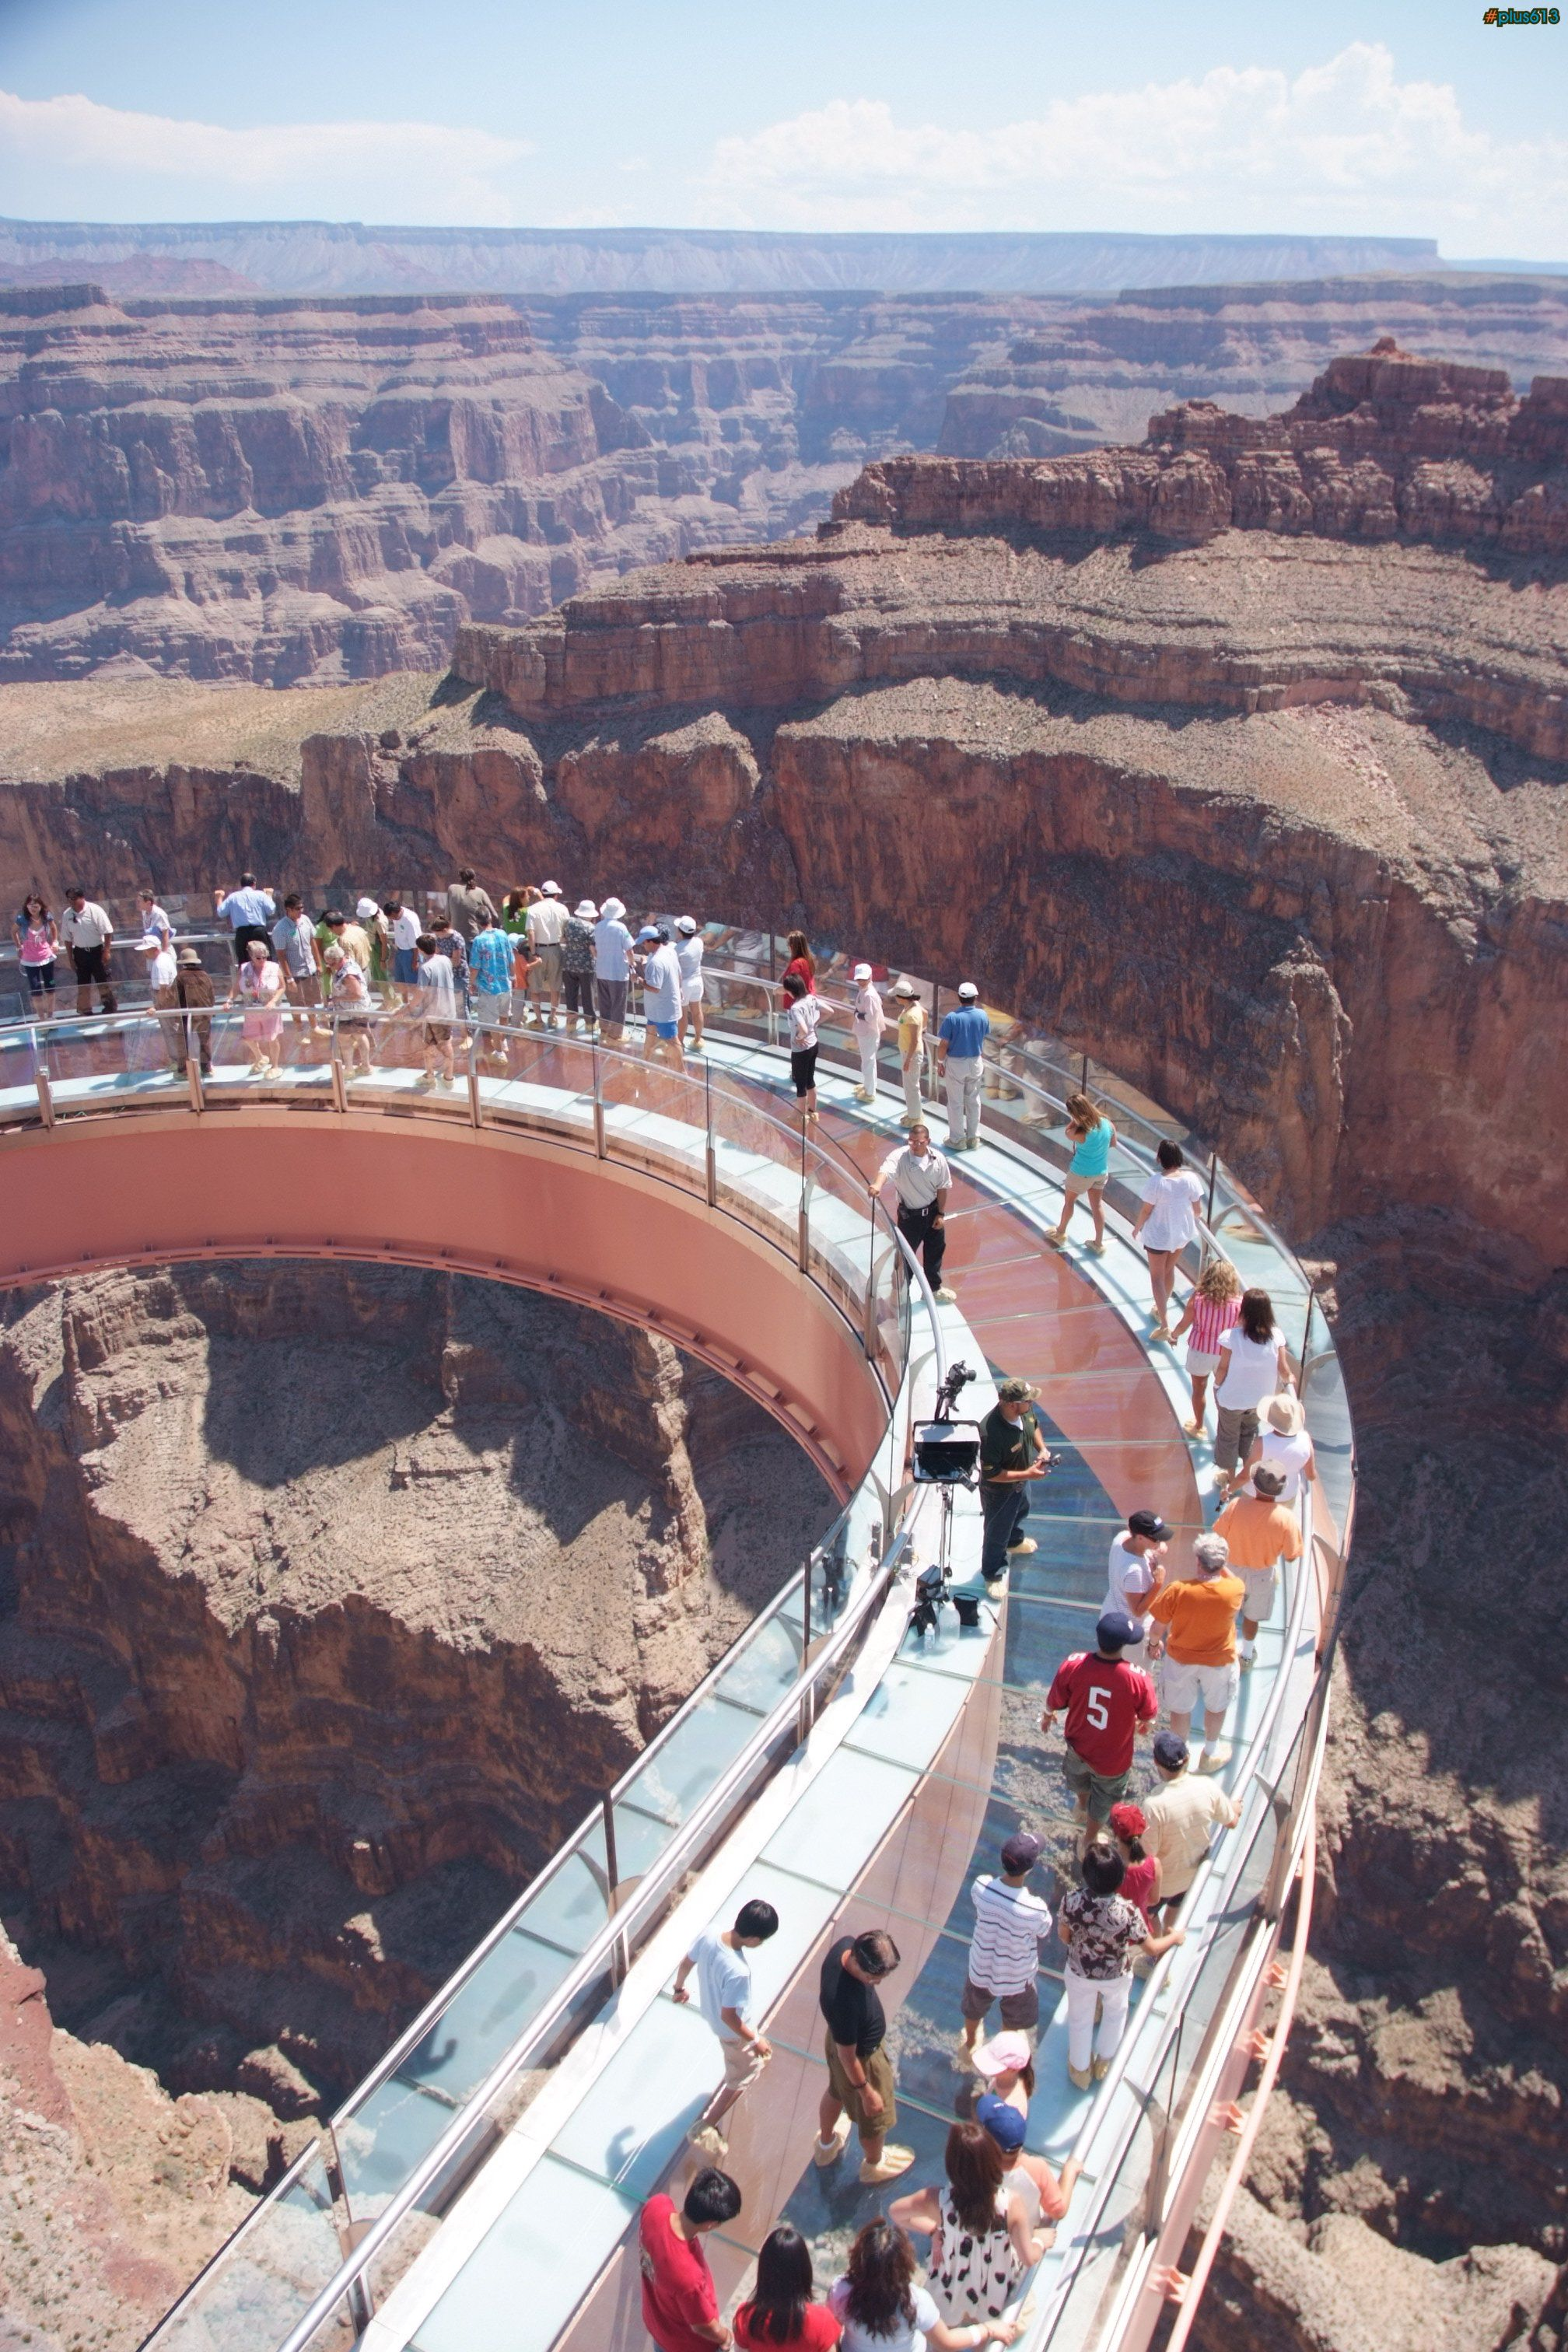 The grand canyon skywalk it is a steep sided canyon carved by the colorado river in the united states in the state of arizona it is contained within and